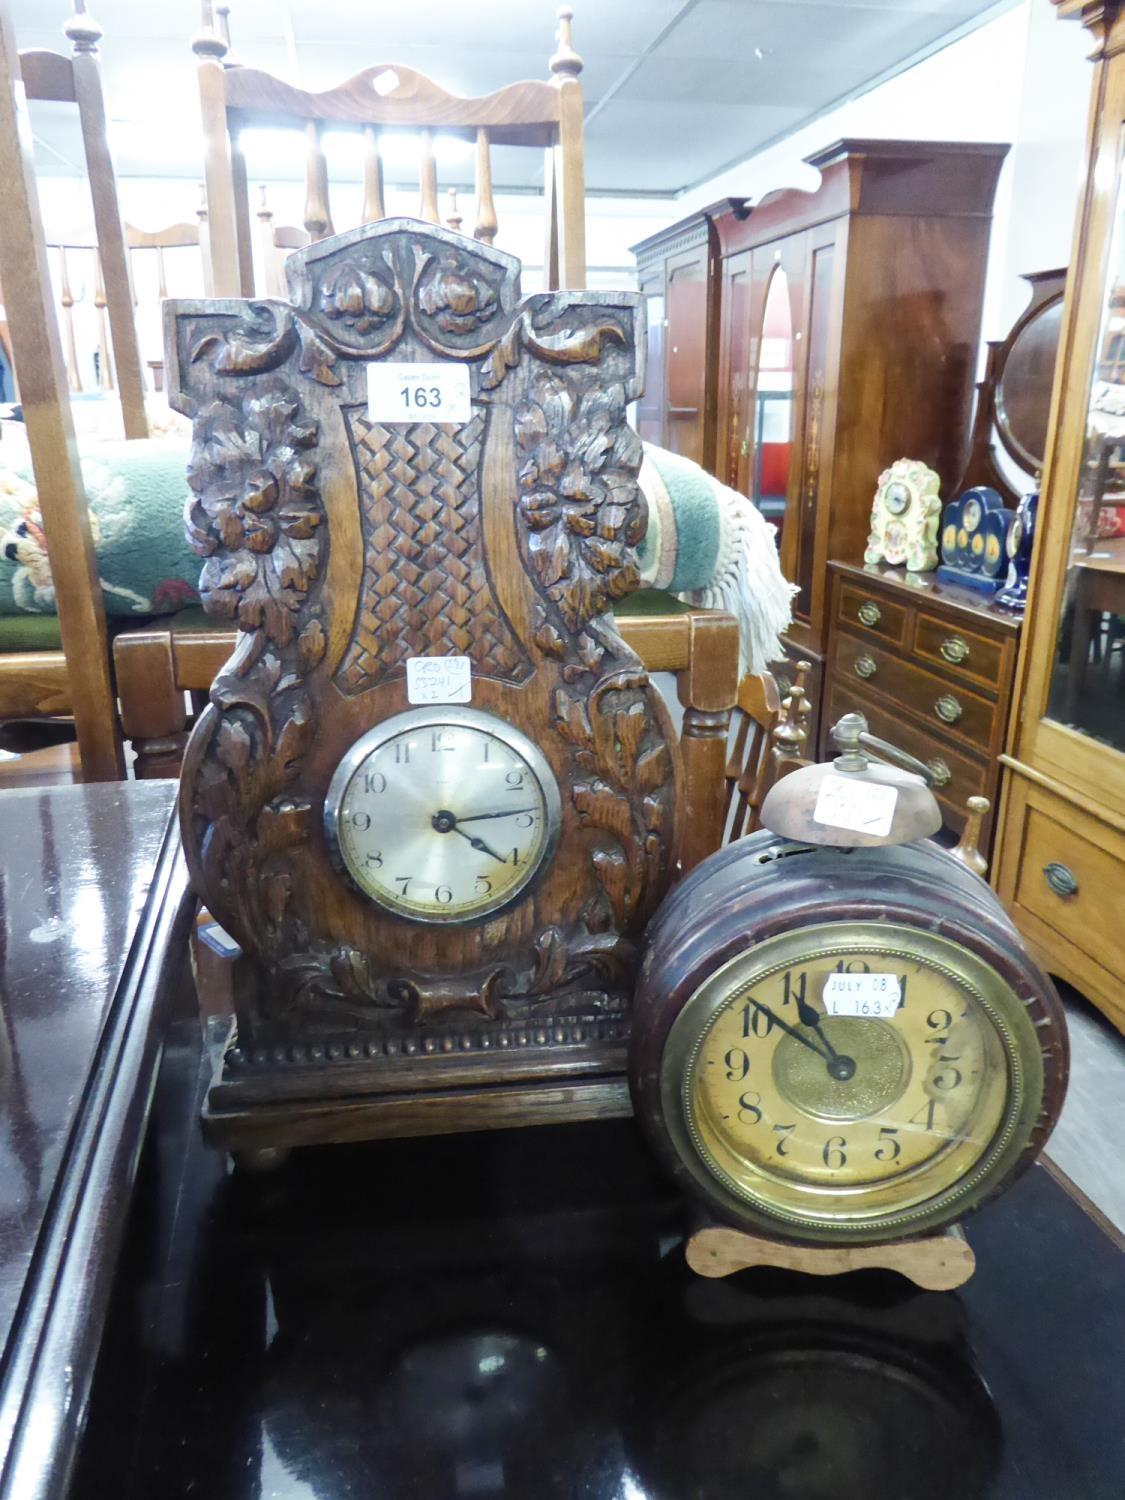 CIRCA 1920's TALL MANTEL CLOCK WITH PLATED DRUM SHAPED 8 DAY MOVEMENT IN OAK CASE WITH FOLIATE AND